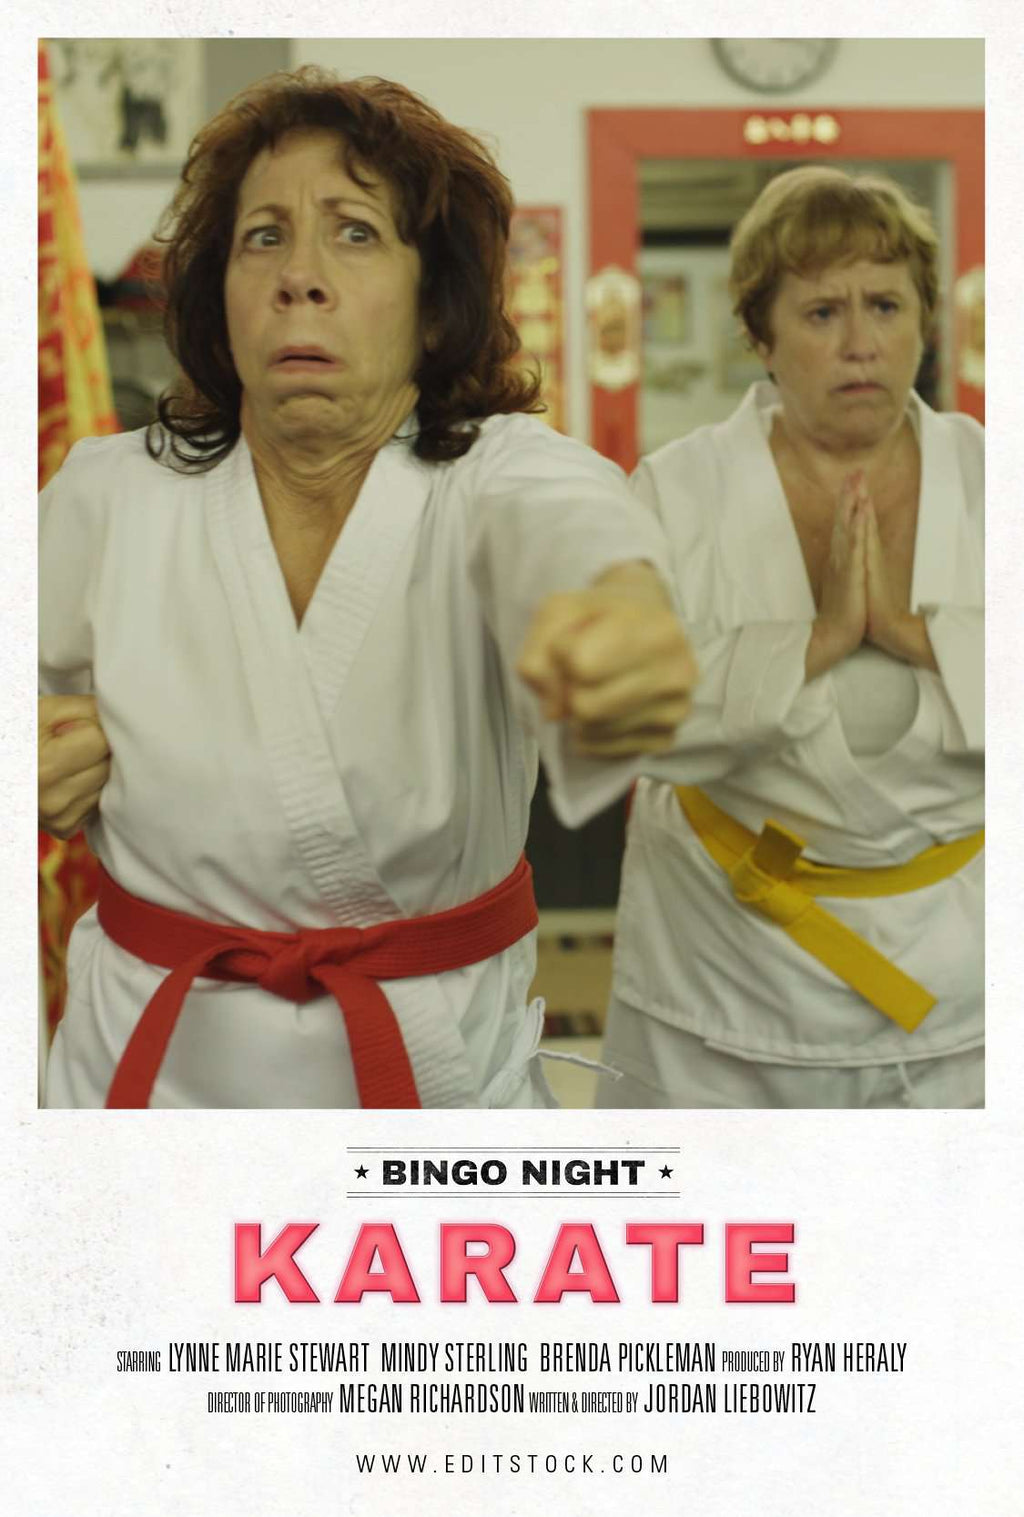 EditStock Project Bingo Night Karate